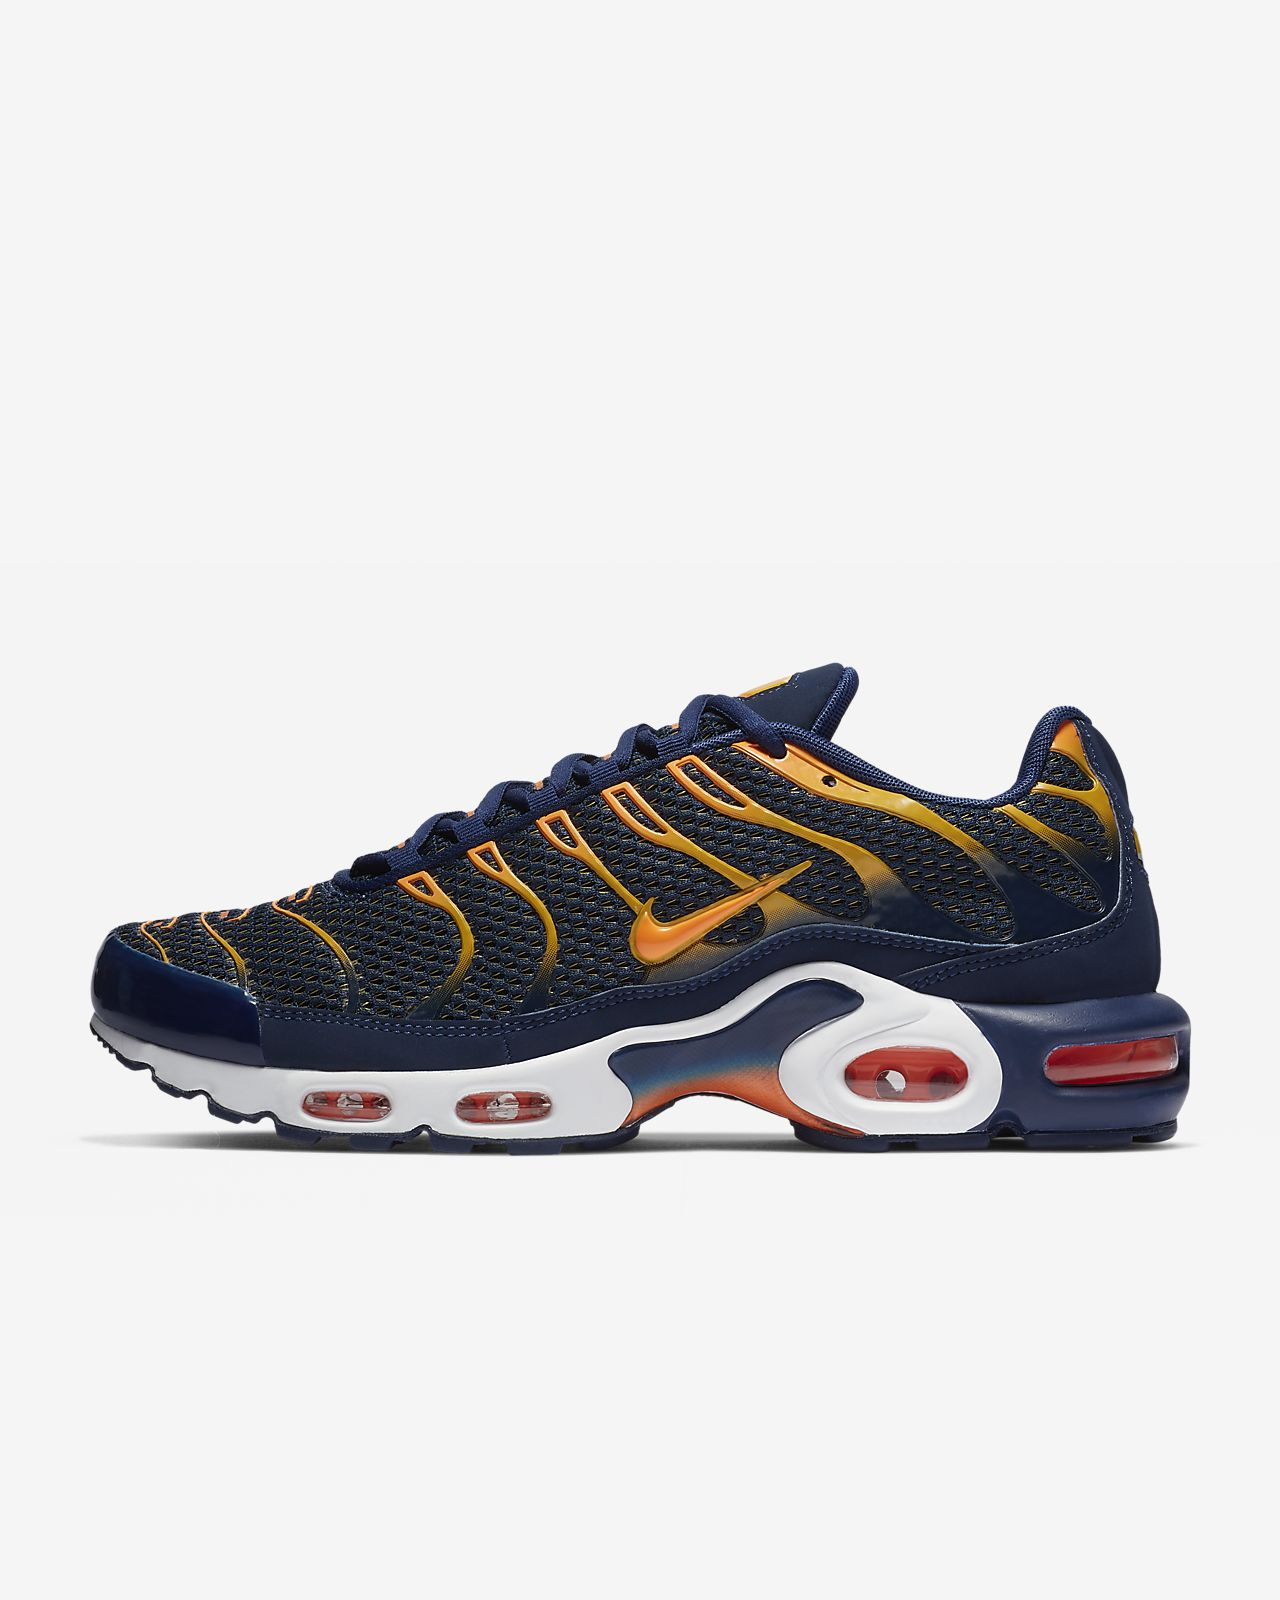 5c0fd68a200c Nike Air Max Plus Men s Shoe. Nike.com BE